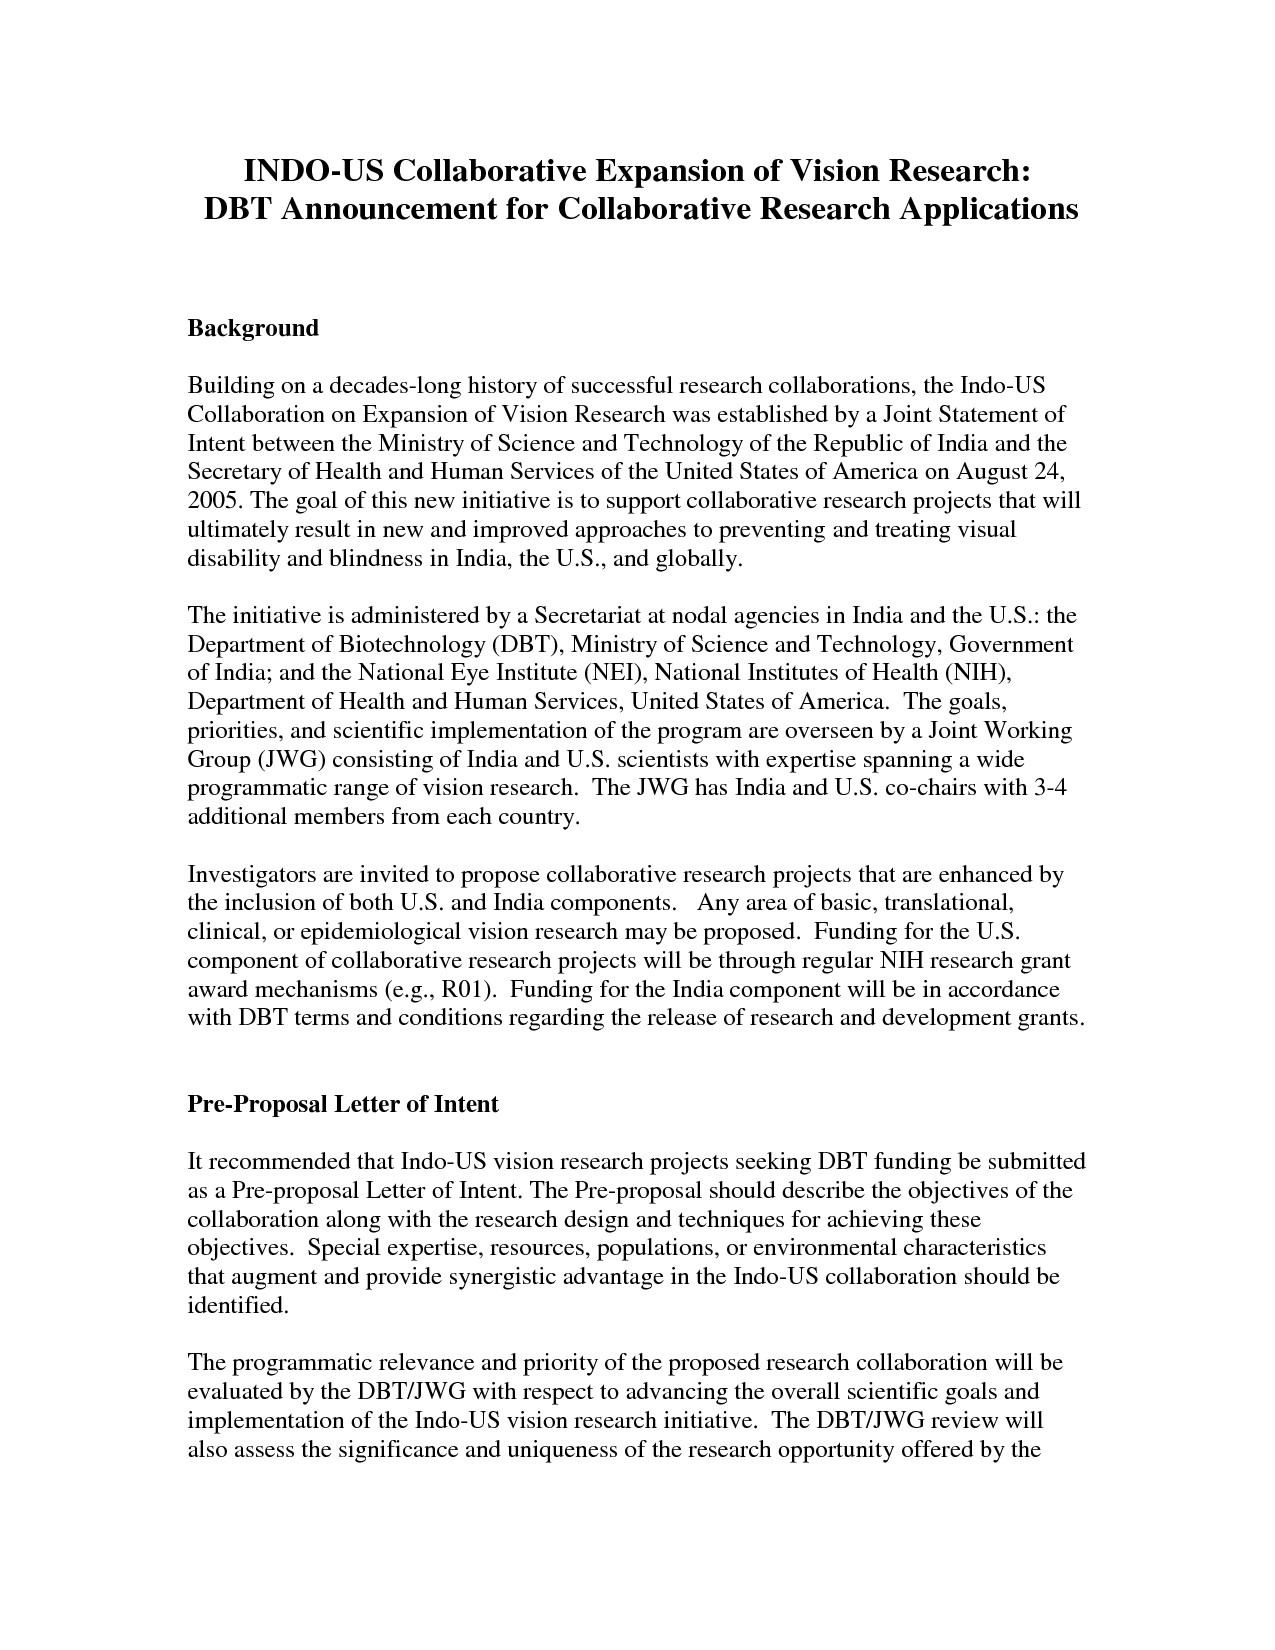 One page thesis proposal example – Example Proposal Letter